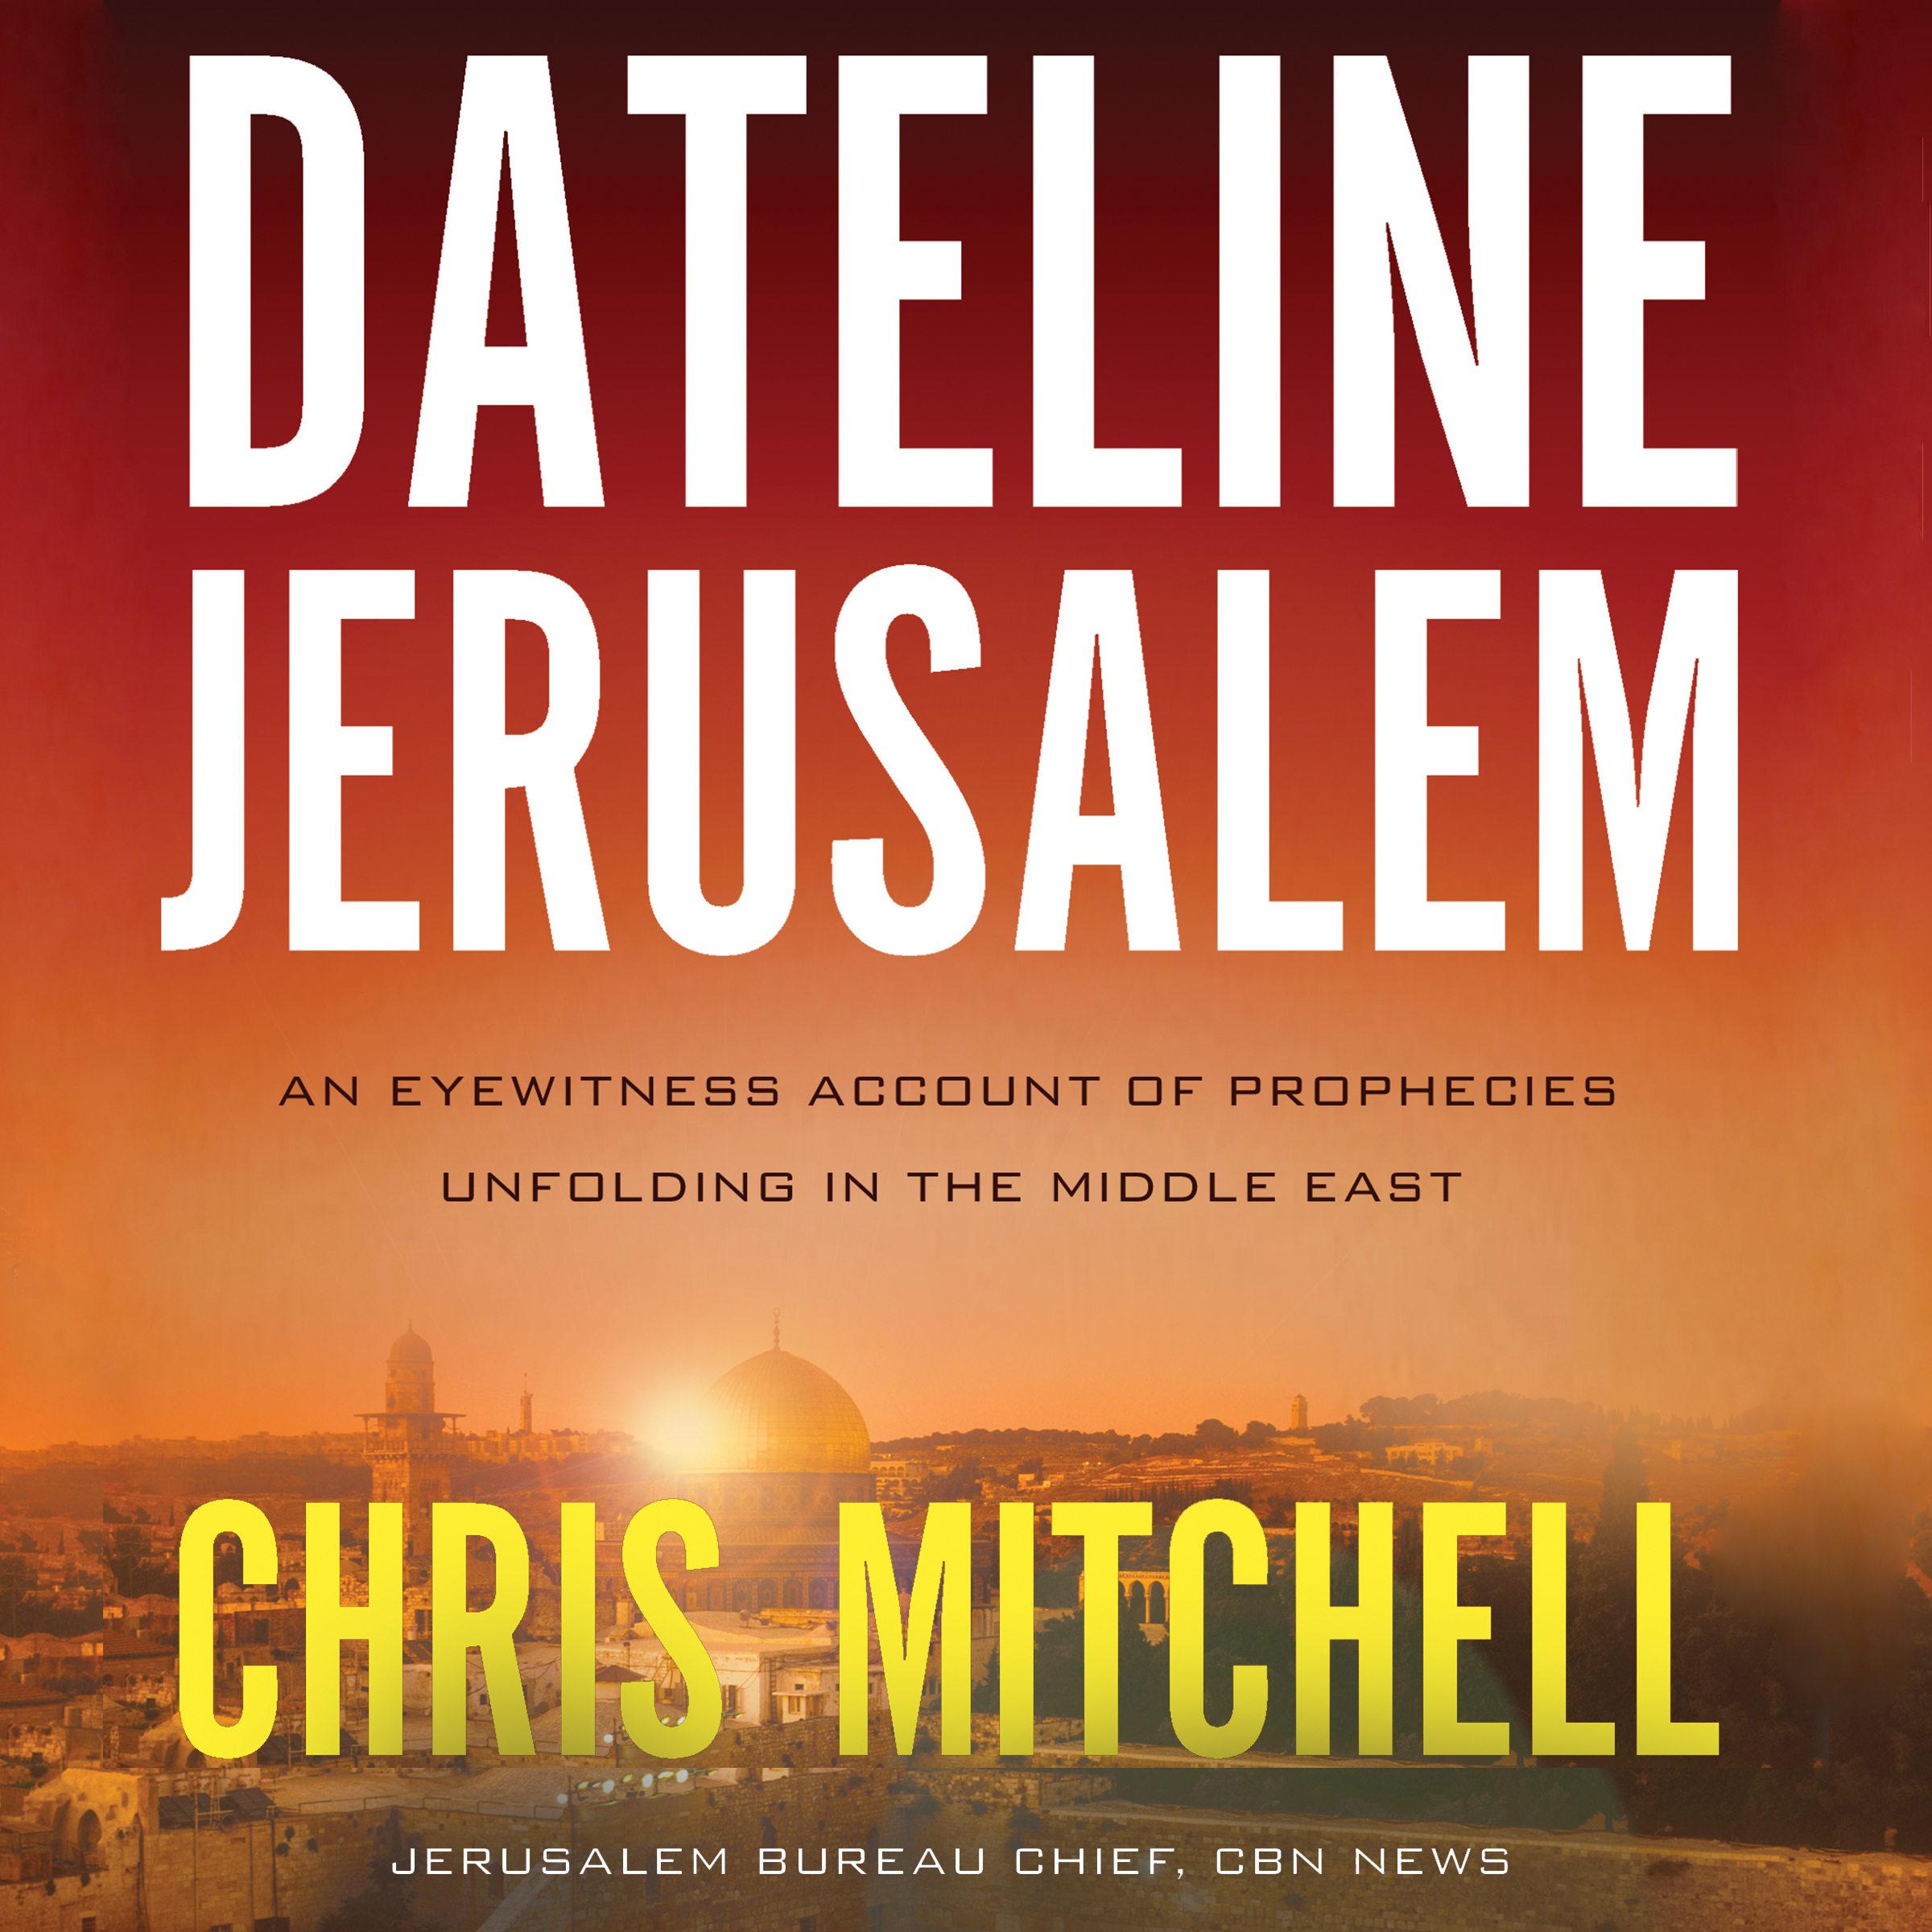 Printable Dateline Jerusalem: An Eyewitness Account of Prophecies Unfolding in the Middle East Audiobook Cover Art